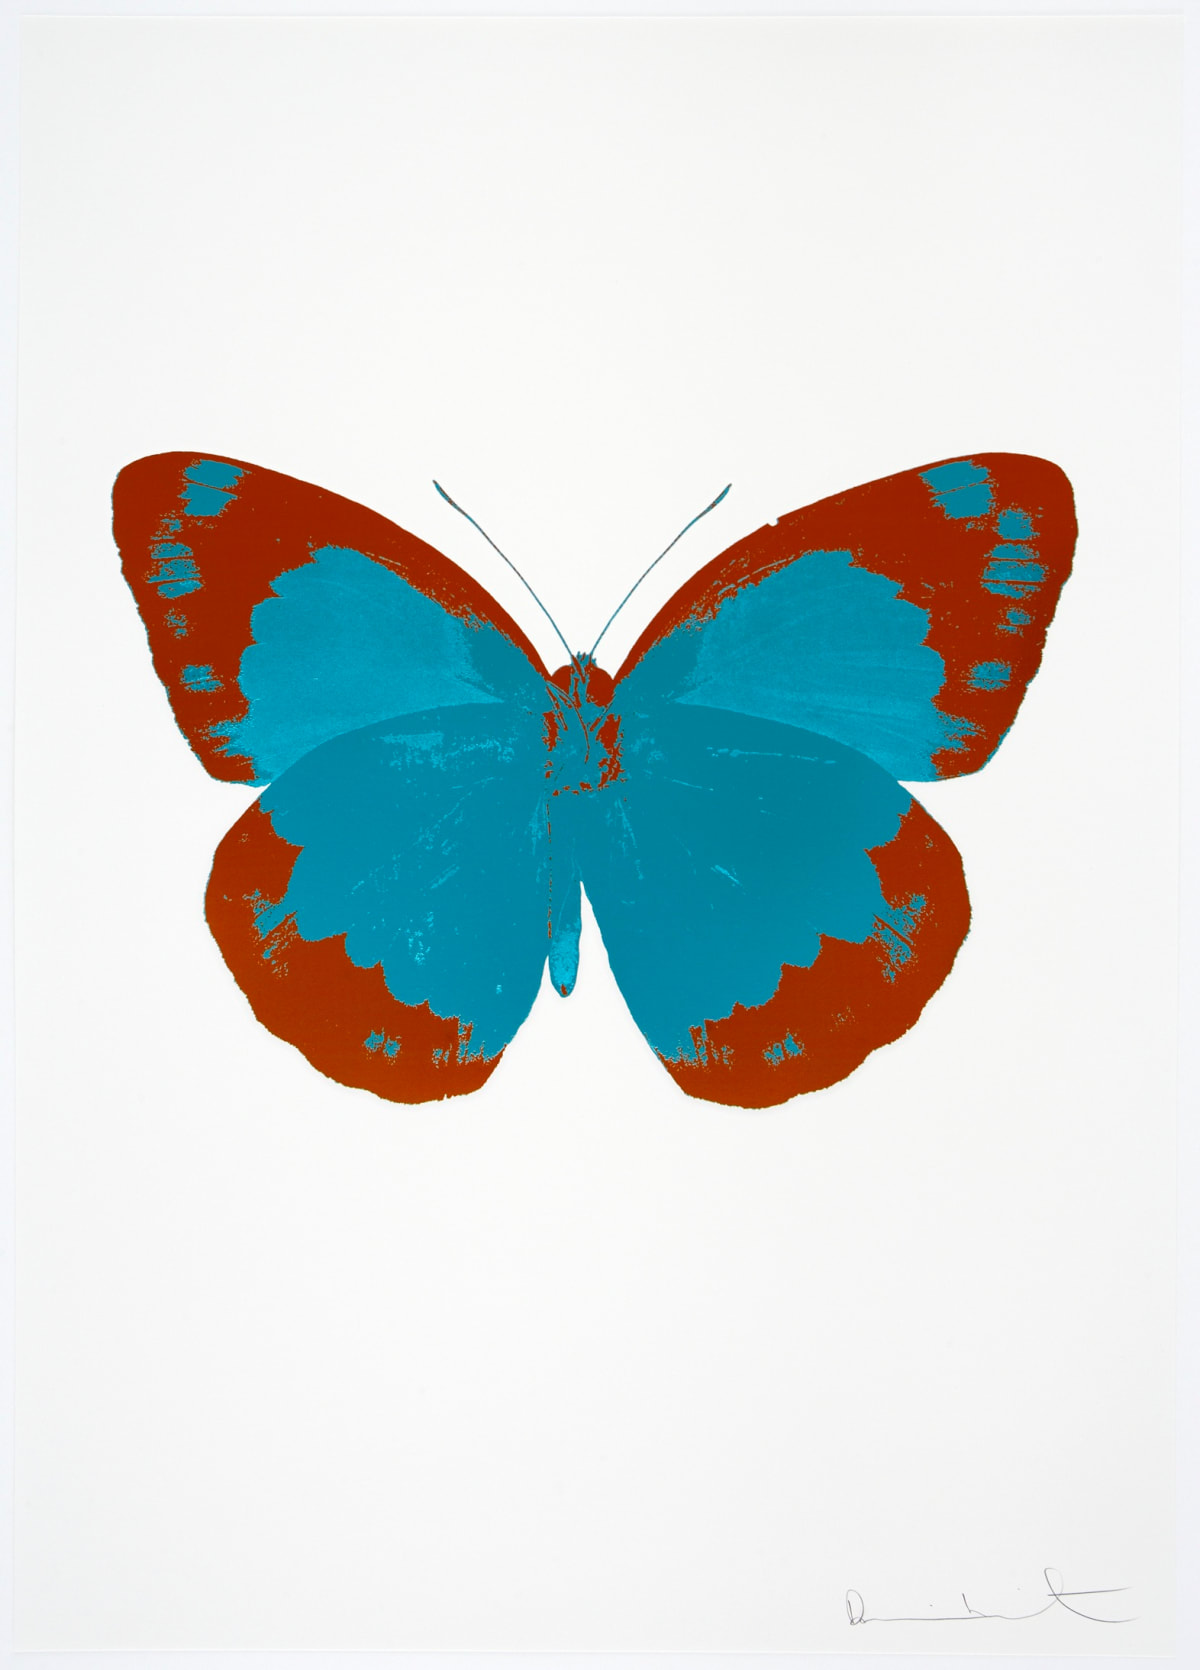 Damien Hirst The Souls II - Topaz/Prairie Copper/Blind Impression, 2010 2 colour foil block on 300gsm Arches 88 archival paper. Signed and numbered. Published by Paul Stolper and Other Criteria 72 x 51cm OC7830 / 658-13 Edition of 15